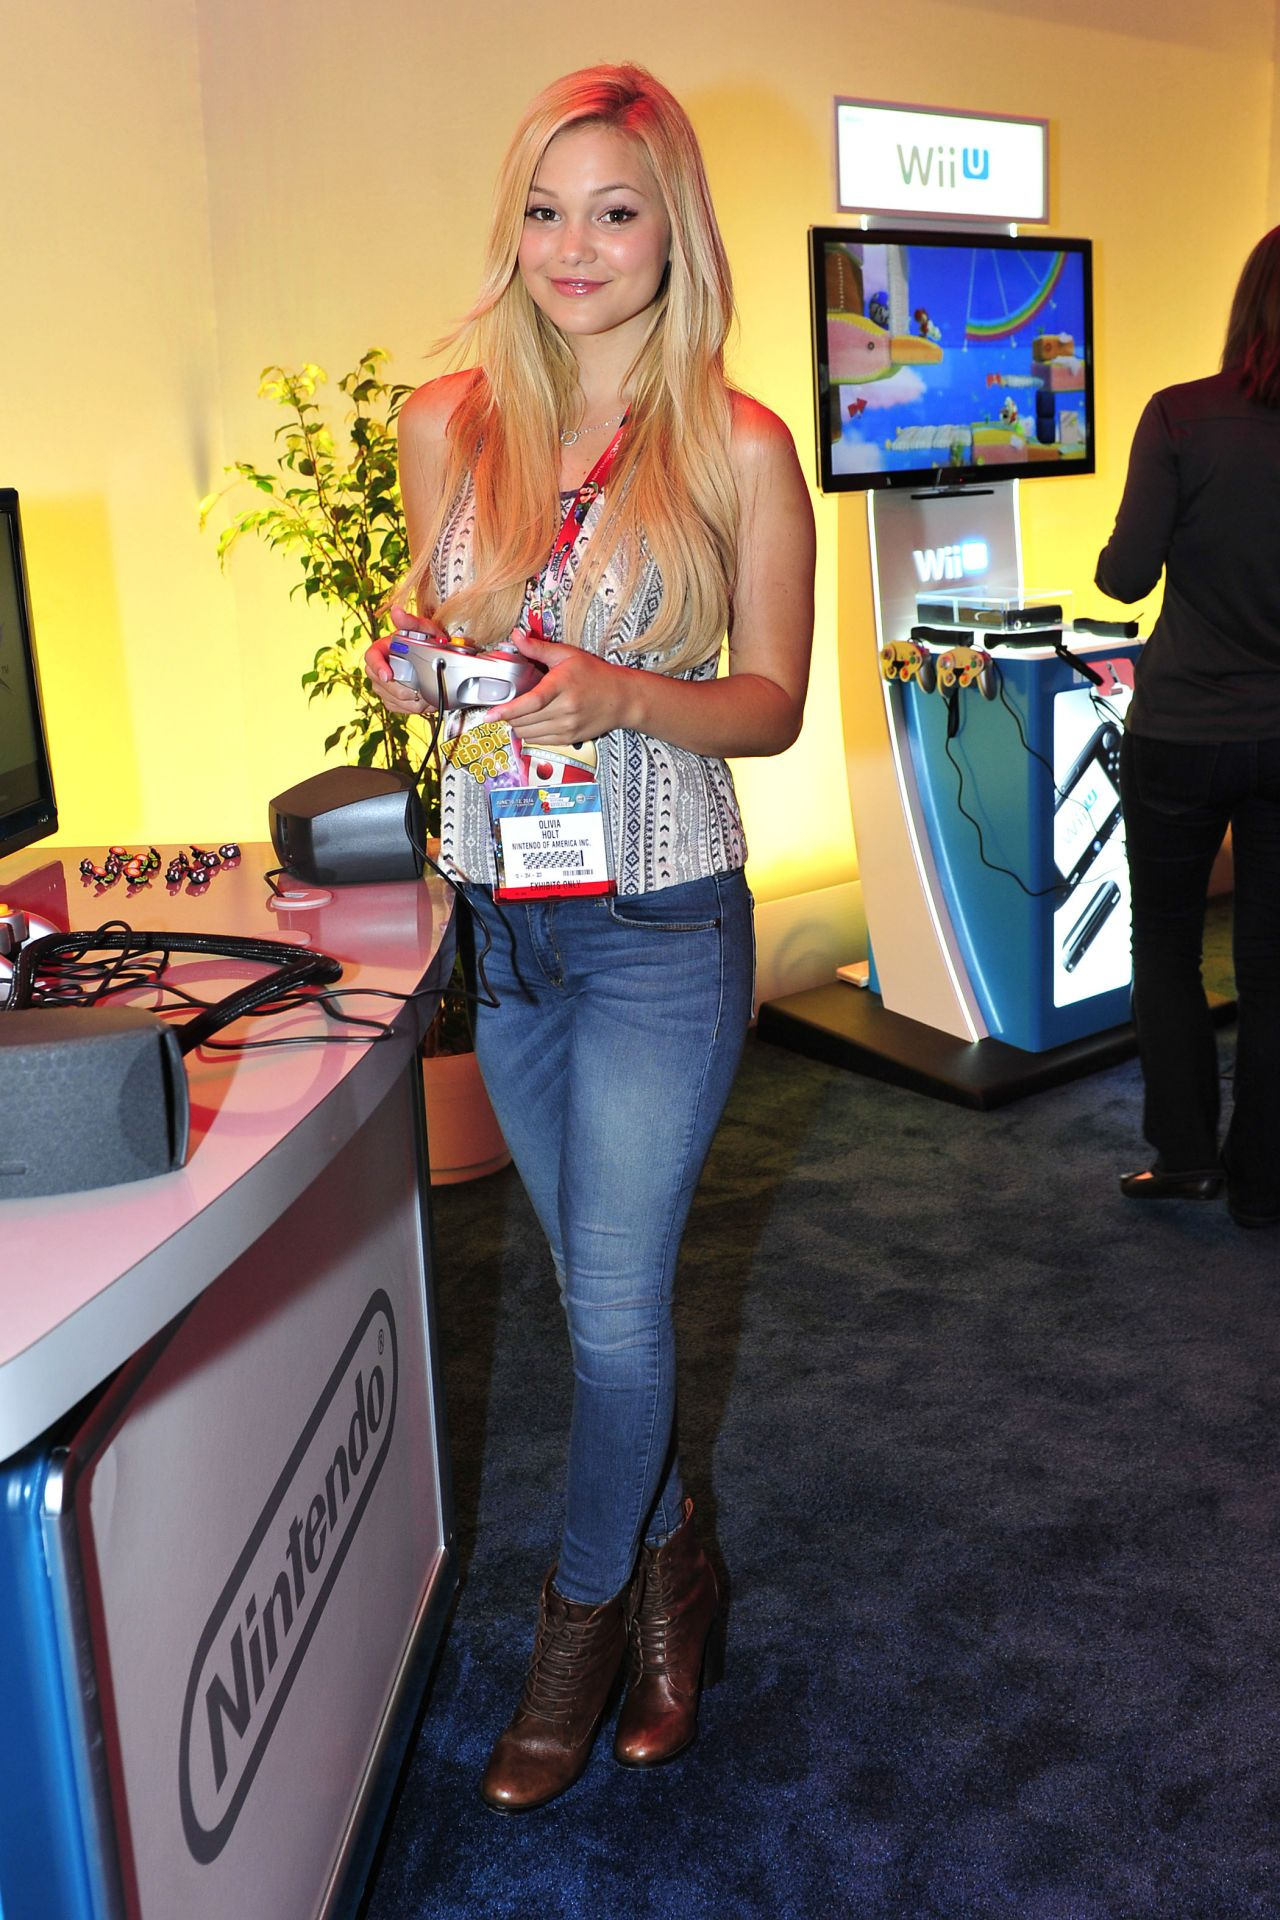 Olivia Holt in Jeans at the Nintendo Wii U station at E3 in Los Angeles